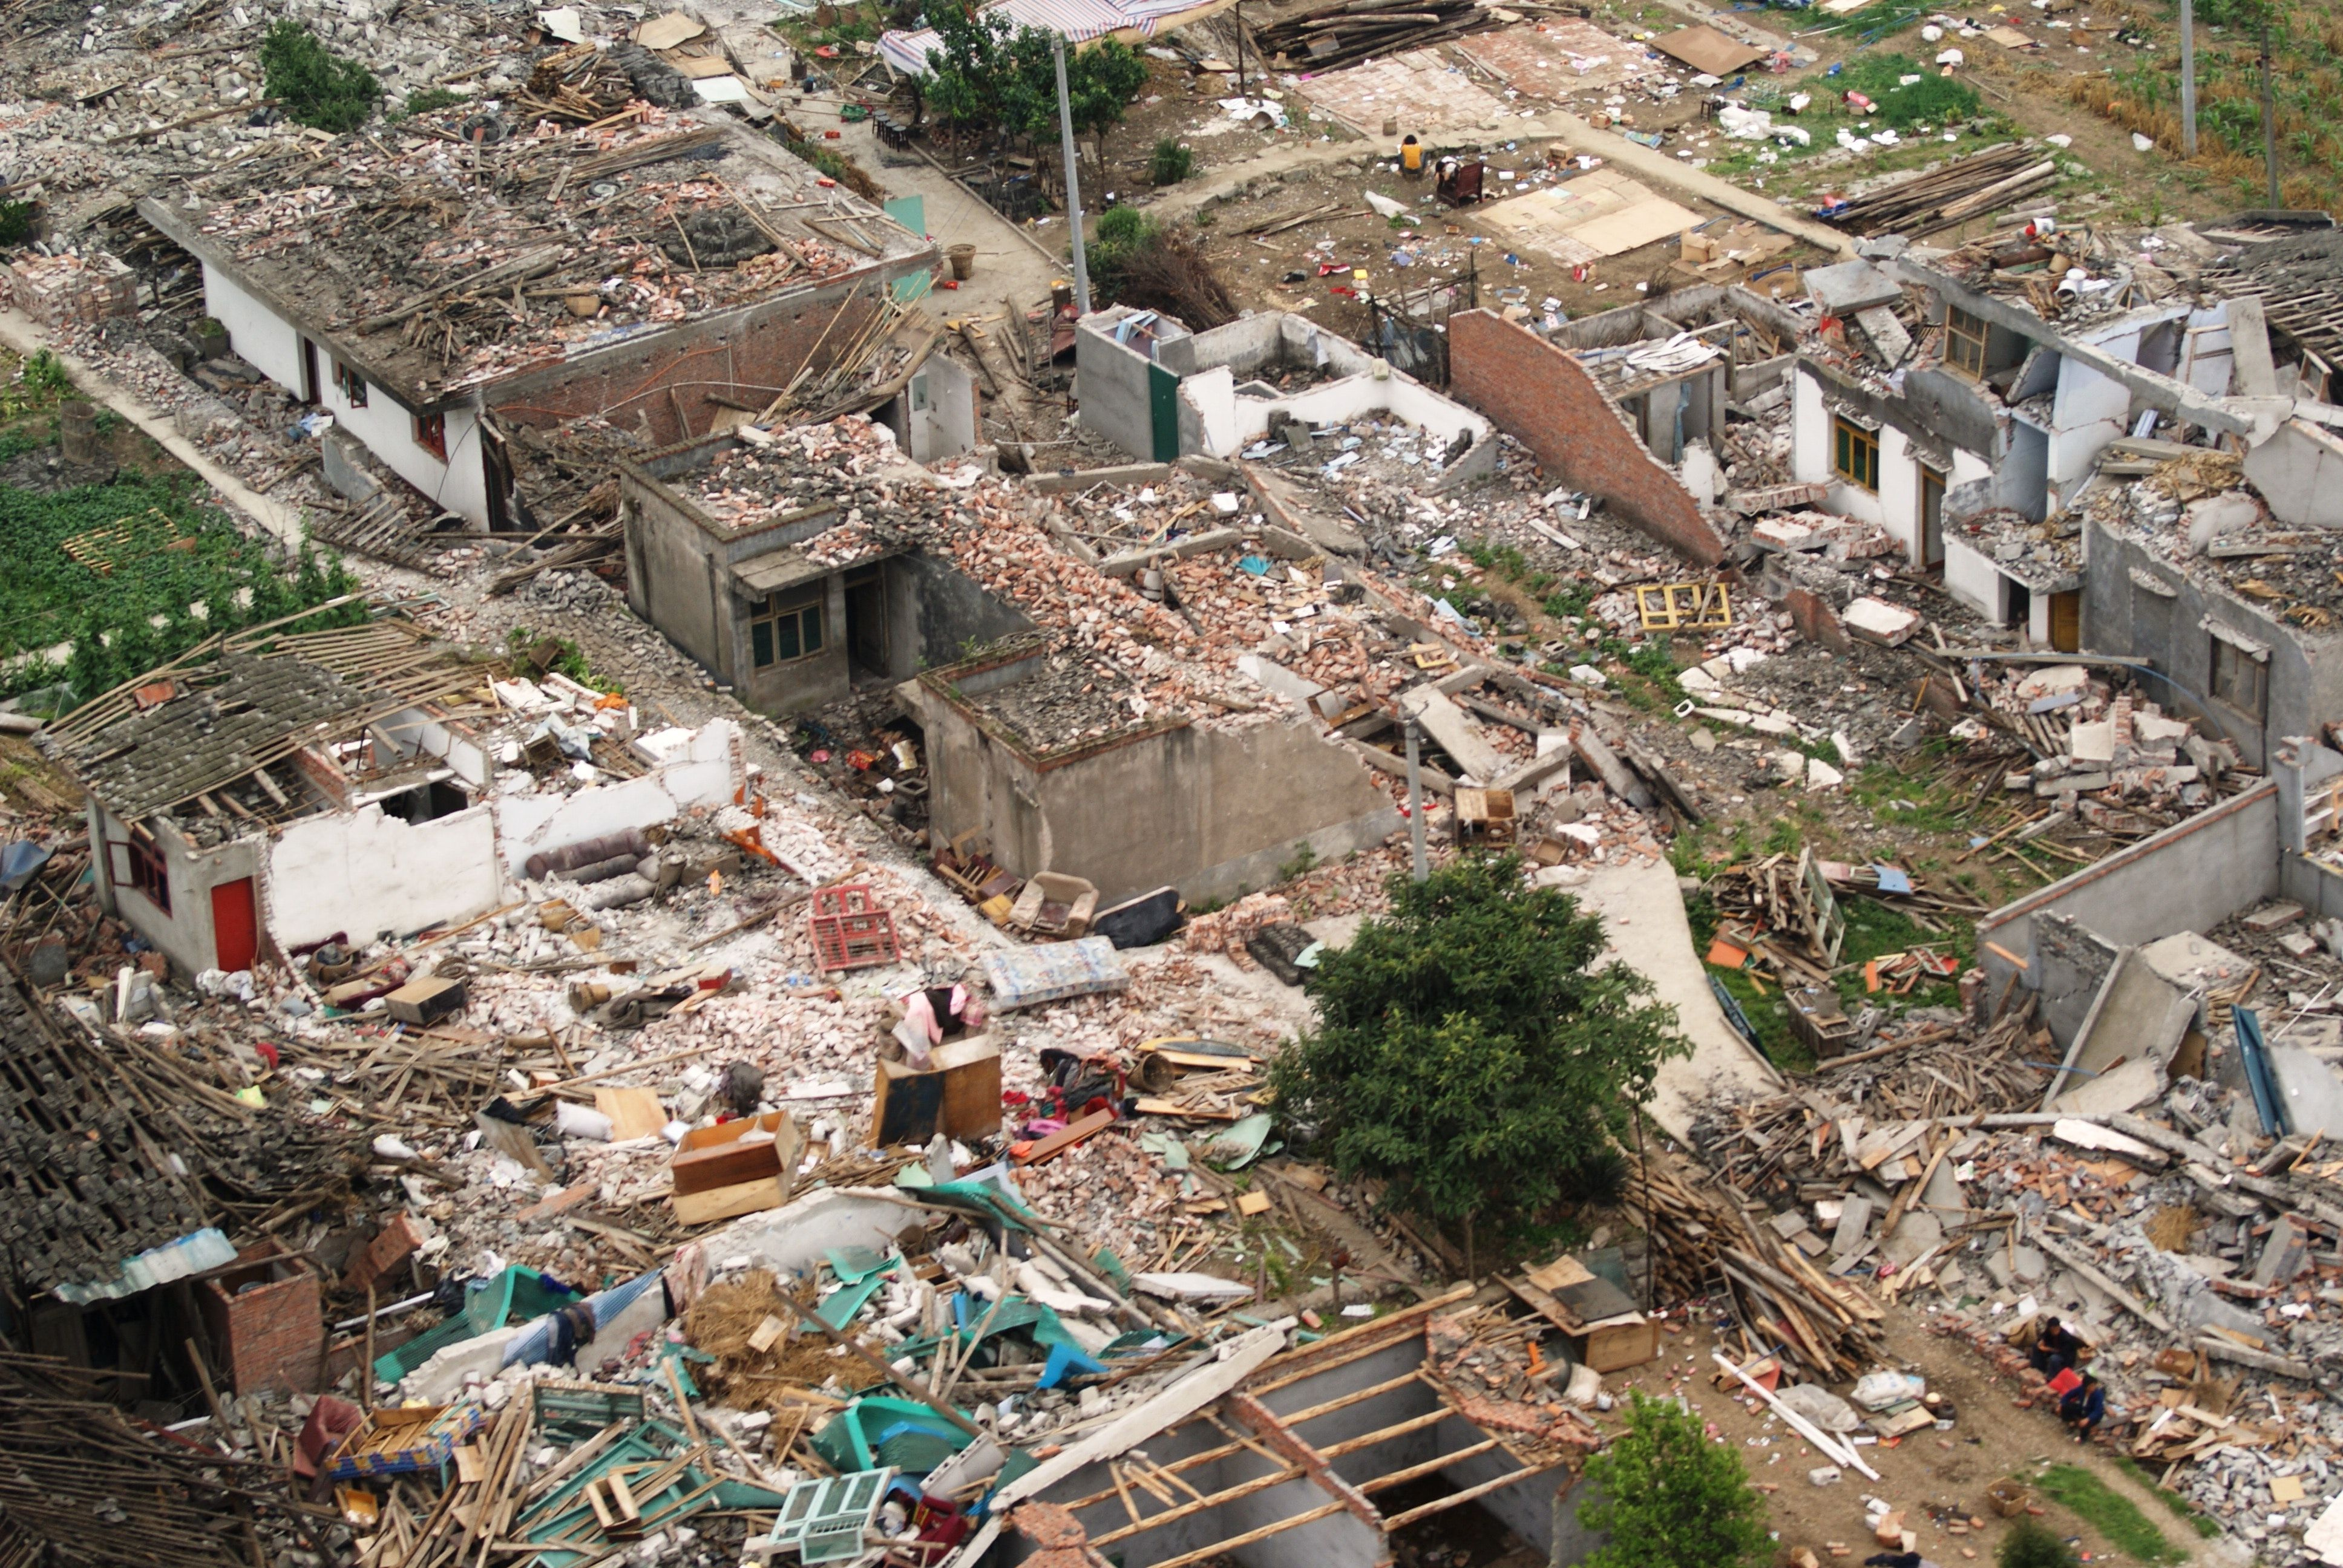 3872x2592 Free stock photo of The destruction from the earthquake